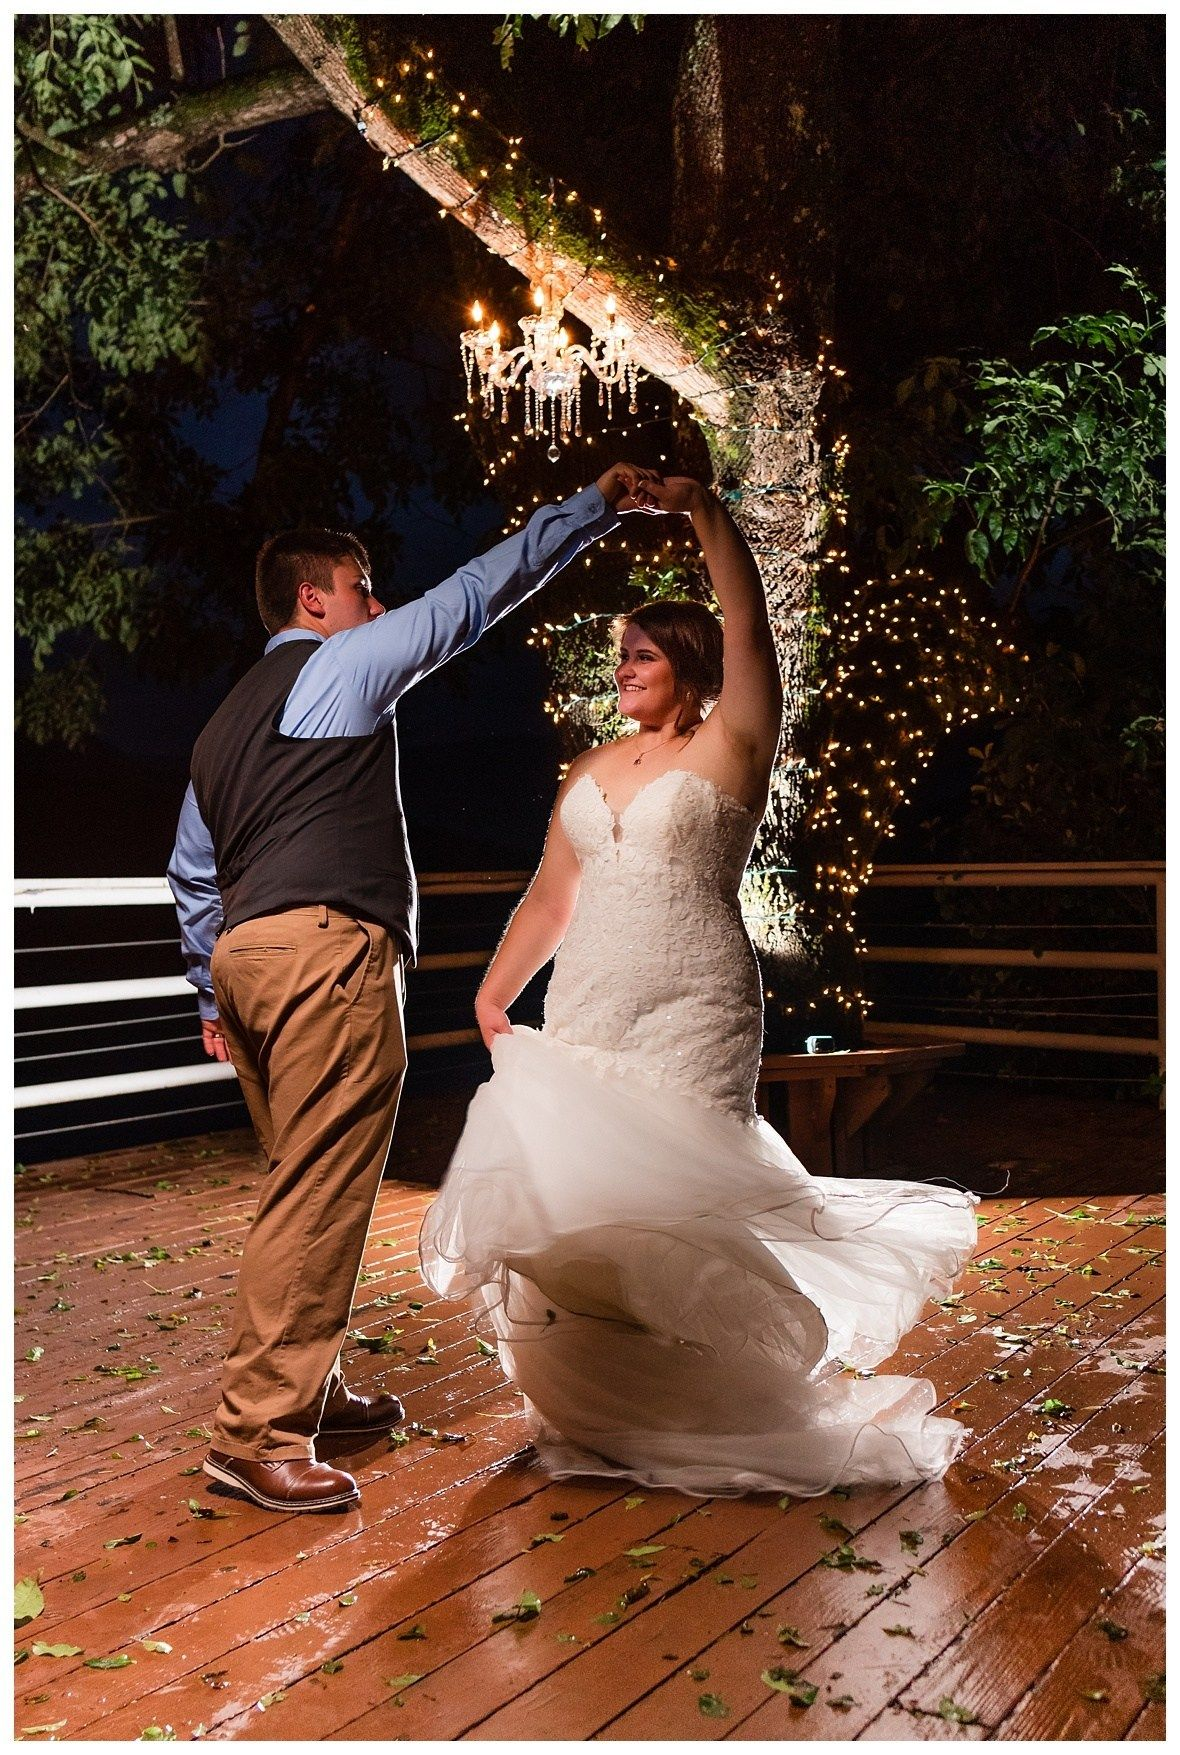 Night wedding at River's Edge Venue in Chattanooga ...